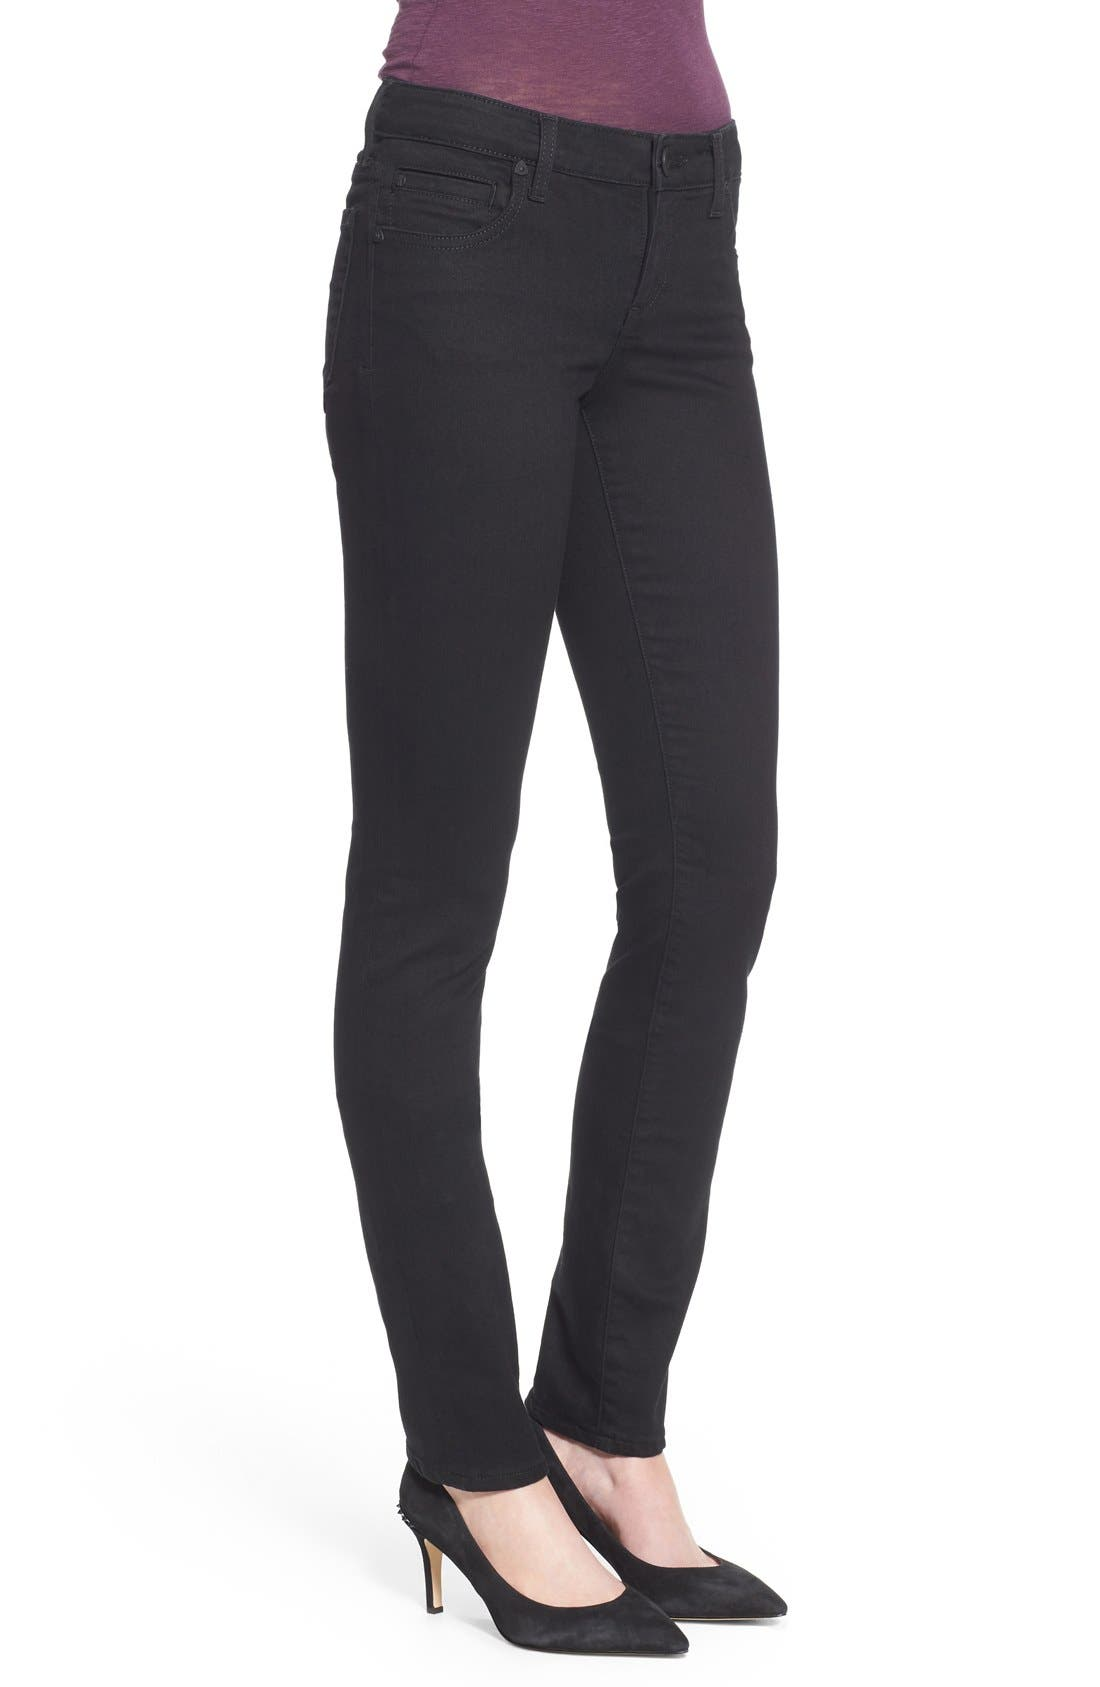 Alternate Image 4  - KUT from the Kloth 'Diana' Stretch Skinny Jeans (Regular & Petite)